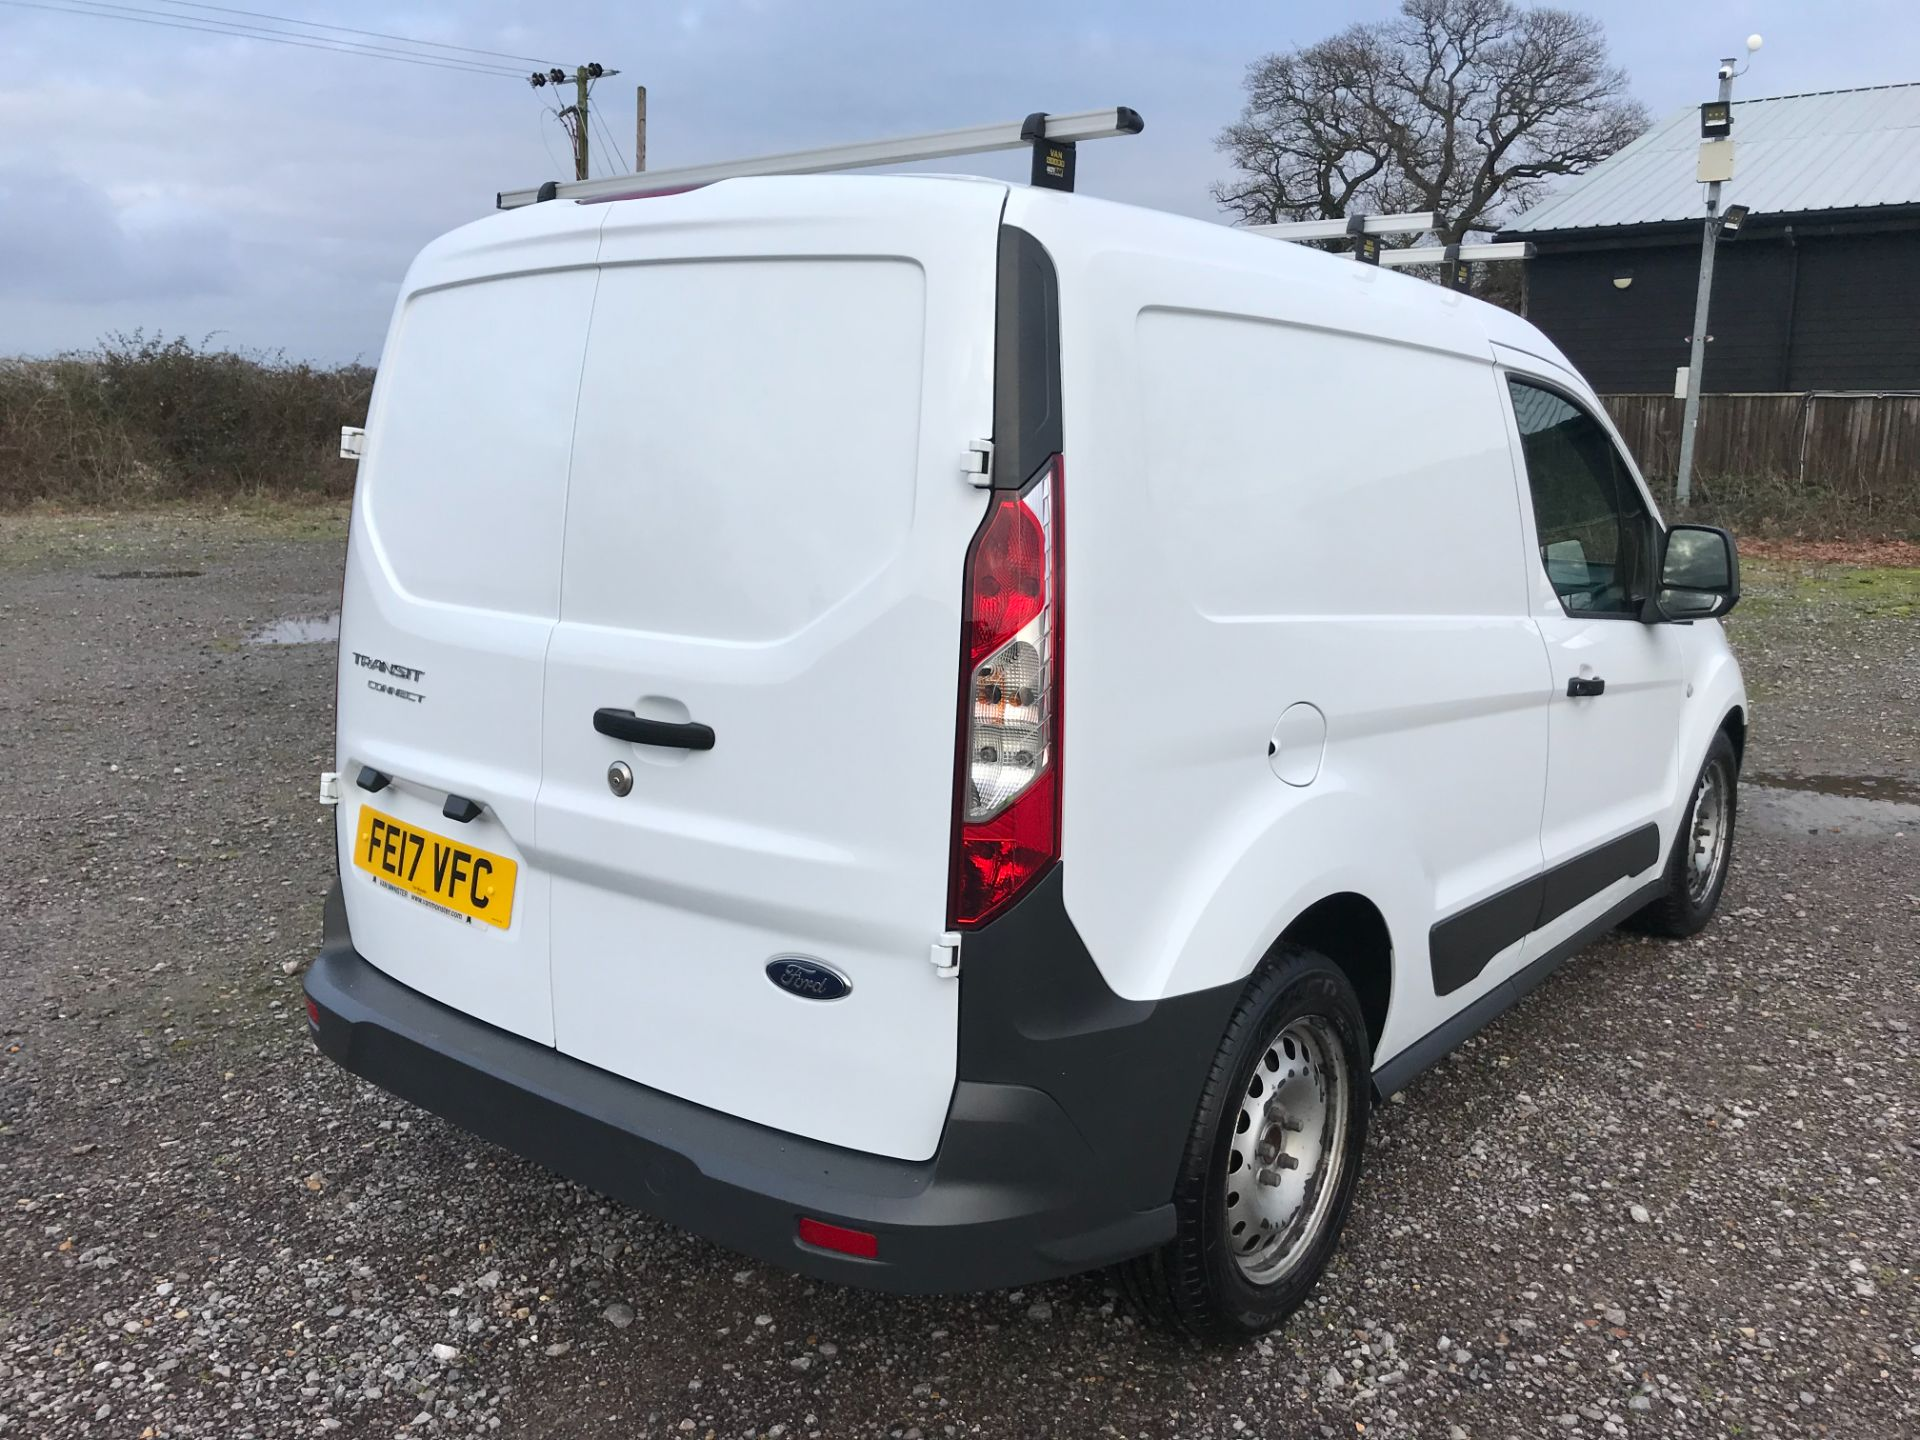 2017 Ford Transit Connect 1.5 Tdci 75Ps Van (FE17VFC) Image 4